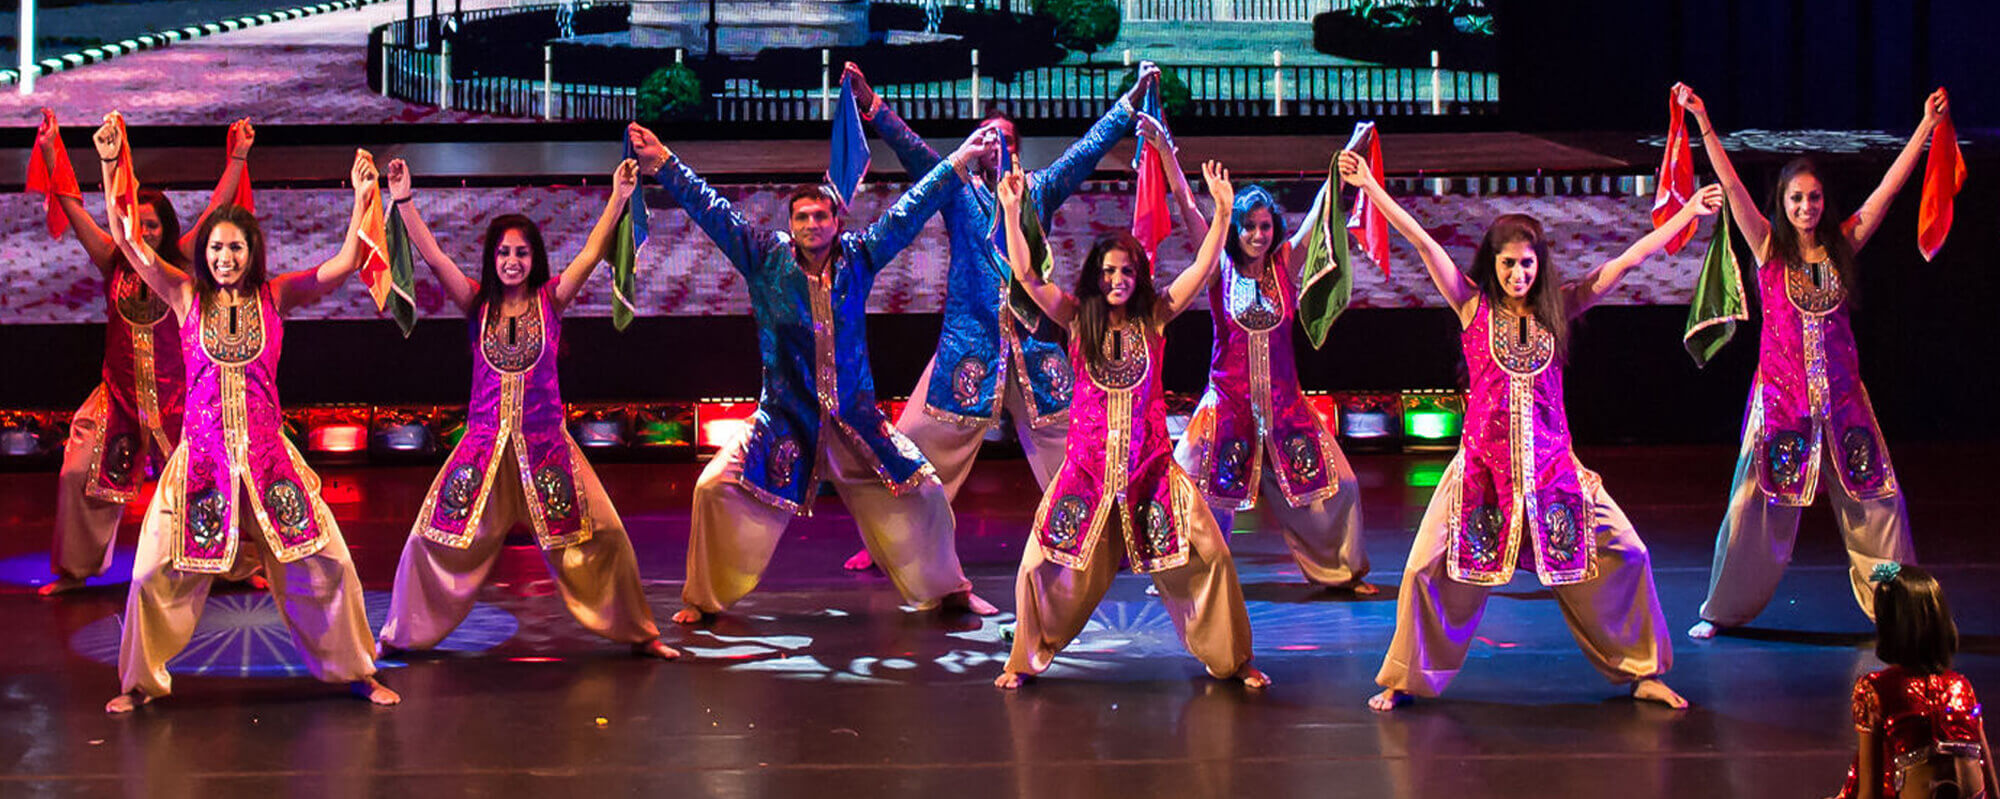 Where to Learn Bollywood Dancing in the Bay Area, Ca?